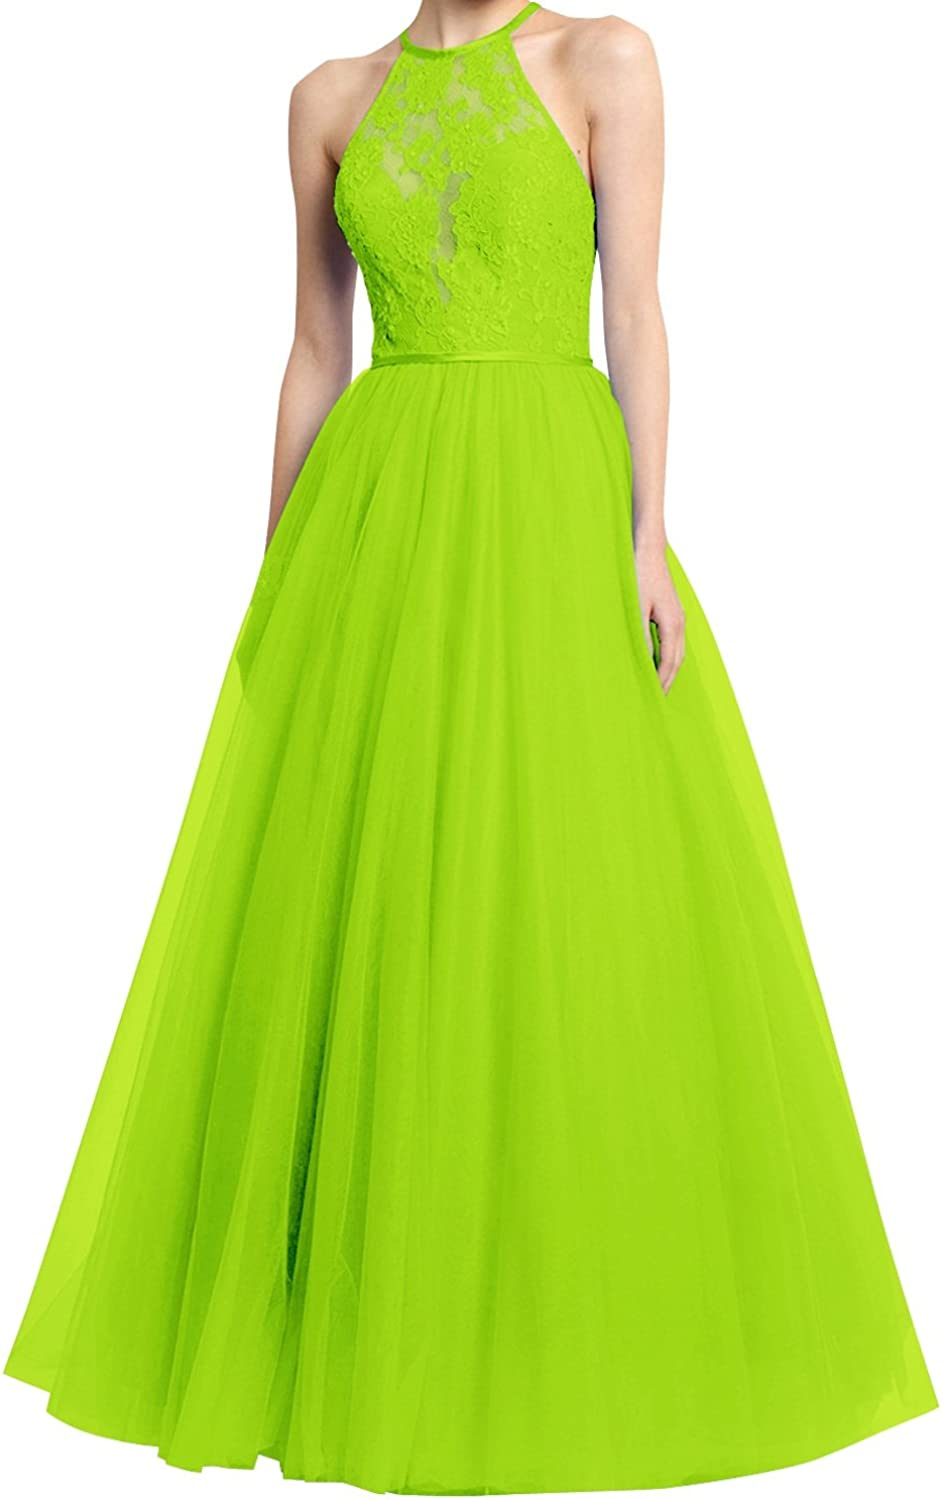 JudyBridal Women Halter Lace Prom Gowns Tulle Aline Long Evening Dress